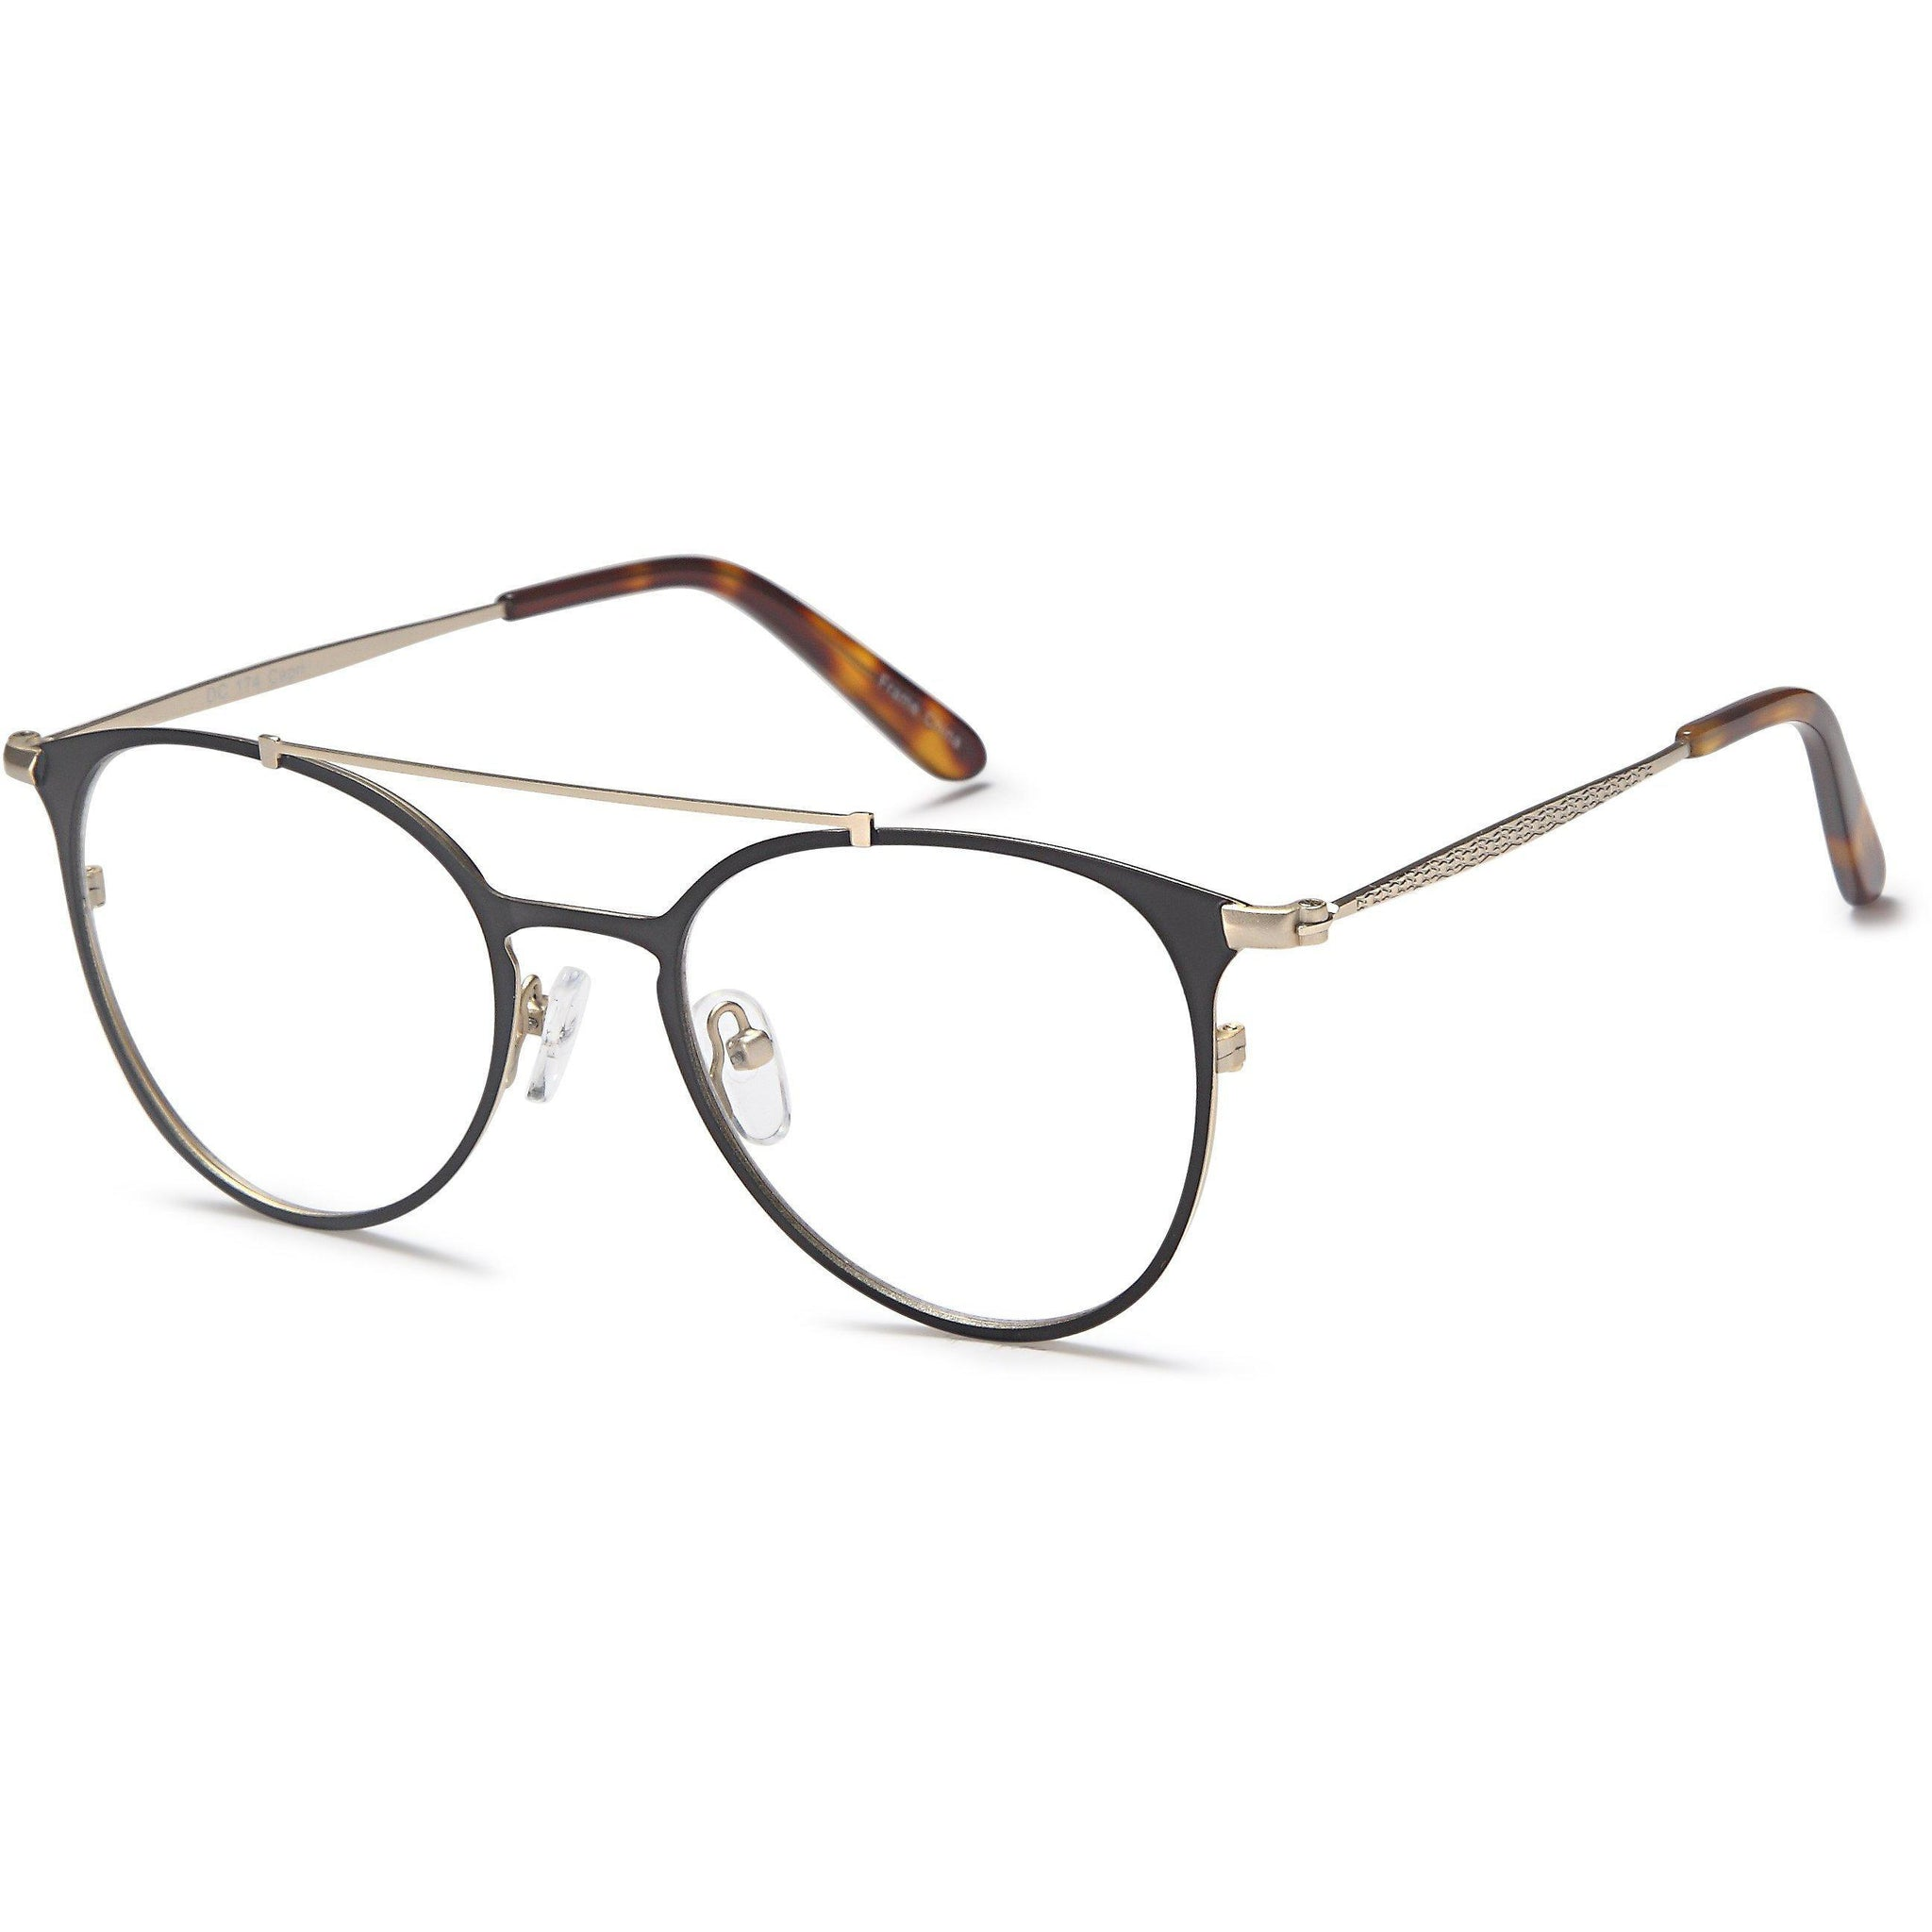 Di Caprio Prescription Glasses DC 174 Eyeglasses Frame - timetoshade